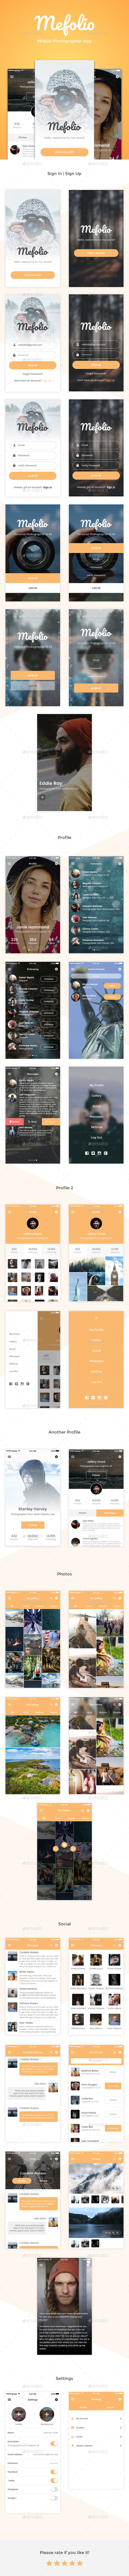 Mifolio - Mobile Photographer App - User Interfaces Web Elements